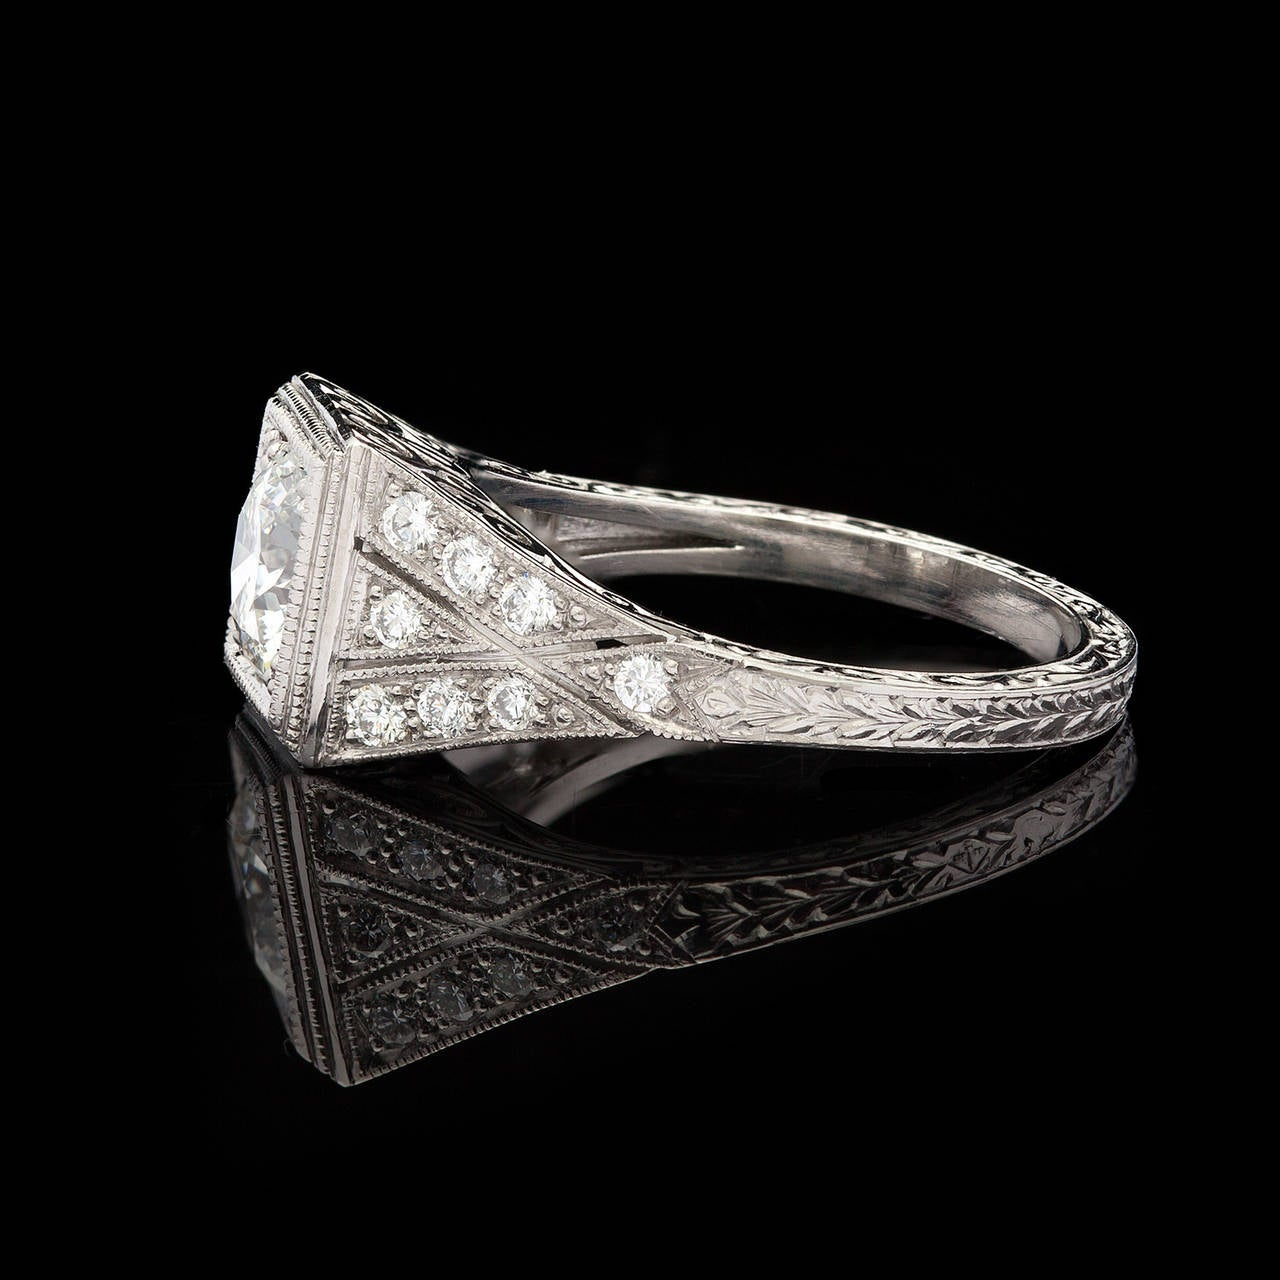 1.05 Carat GIA Certified Diamond Platinum Ring In Excellent Condition For Sale In San Francisco, CA